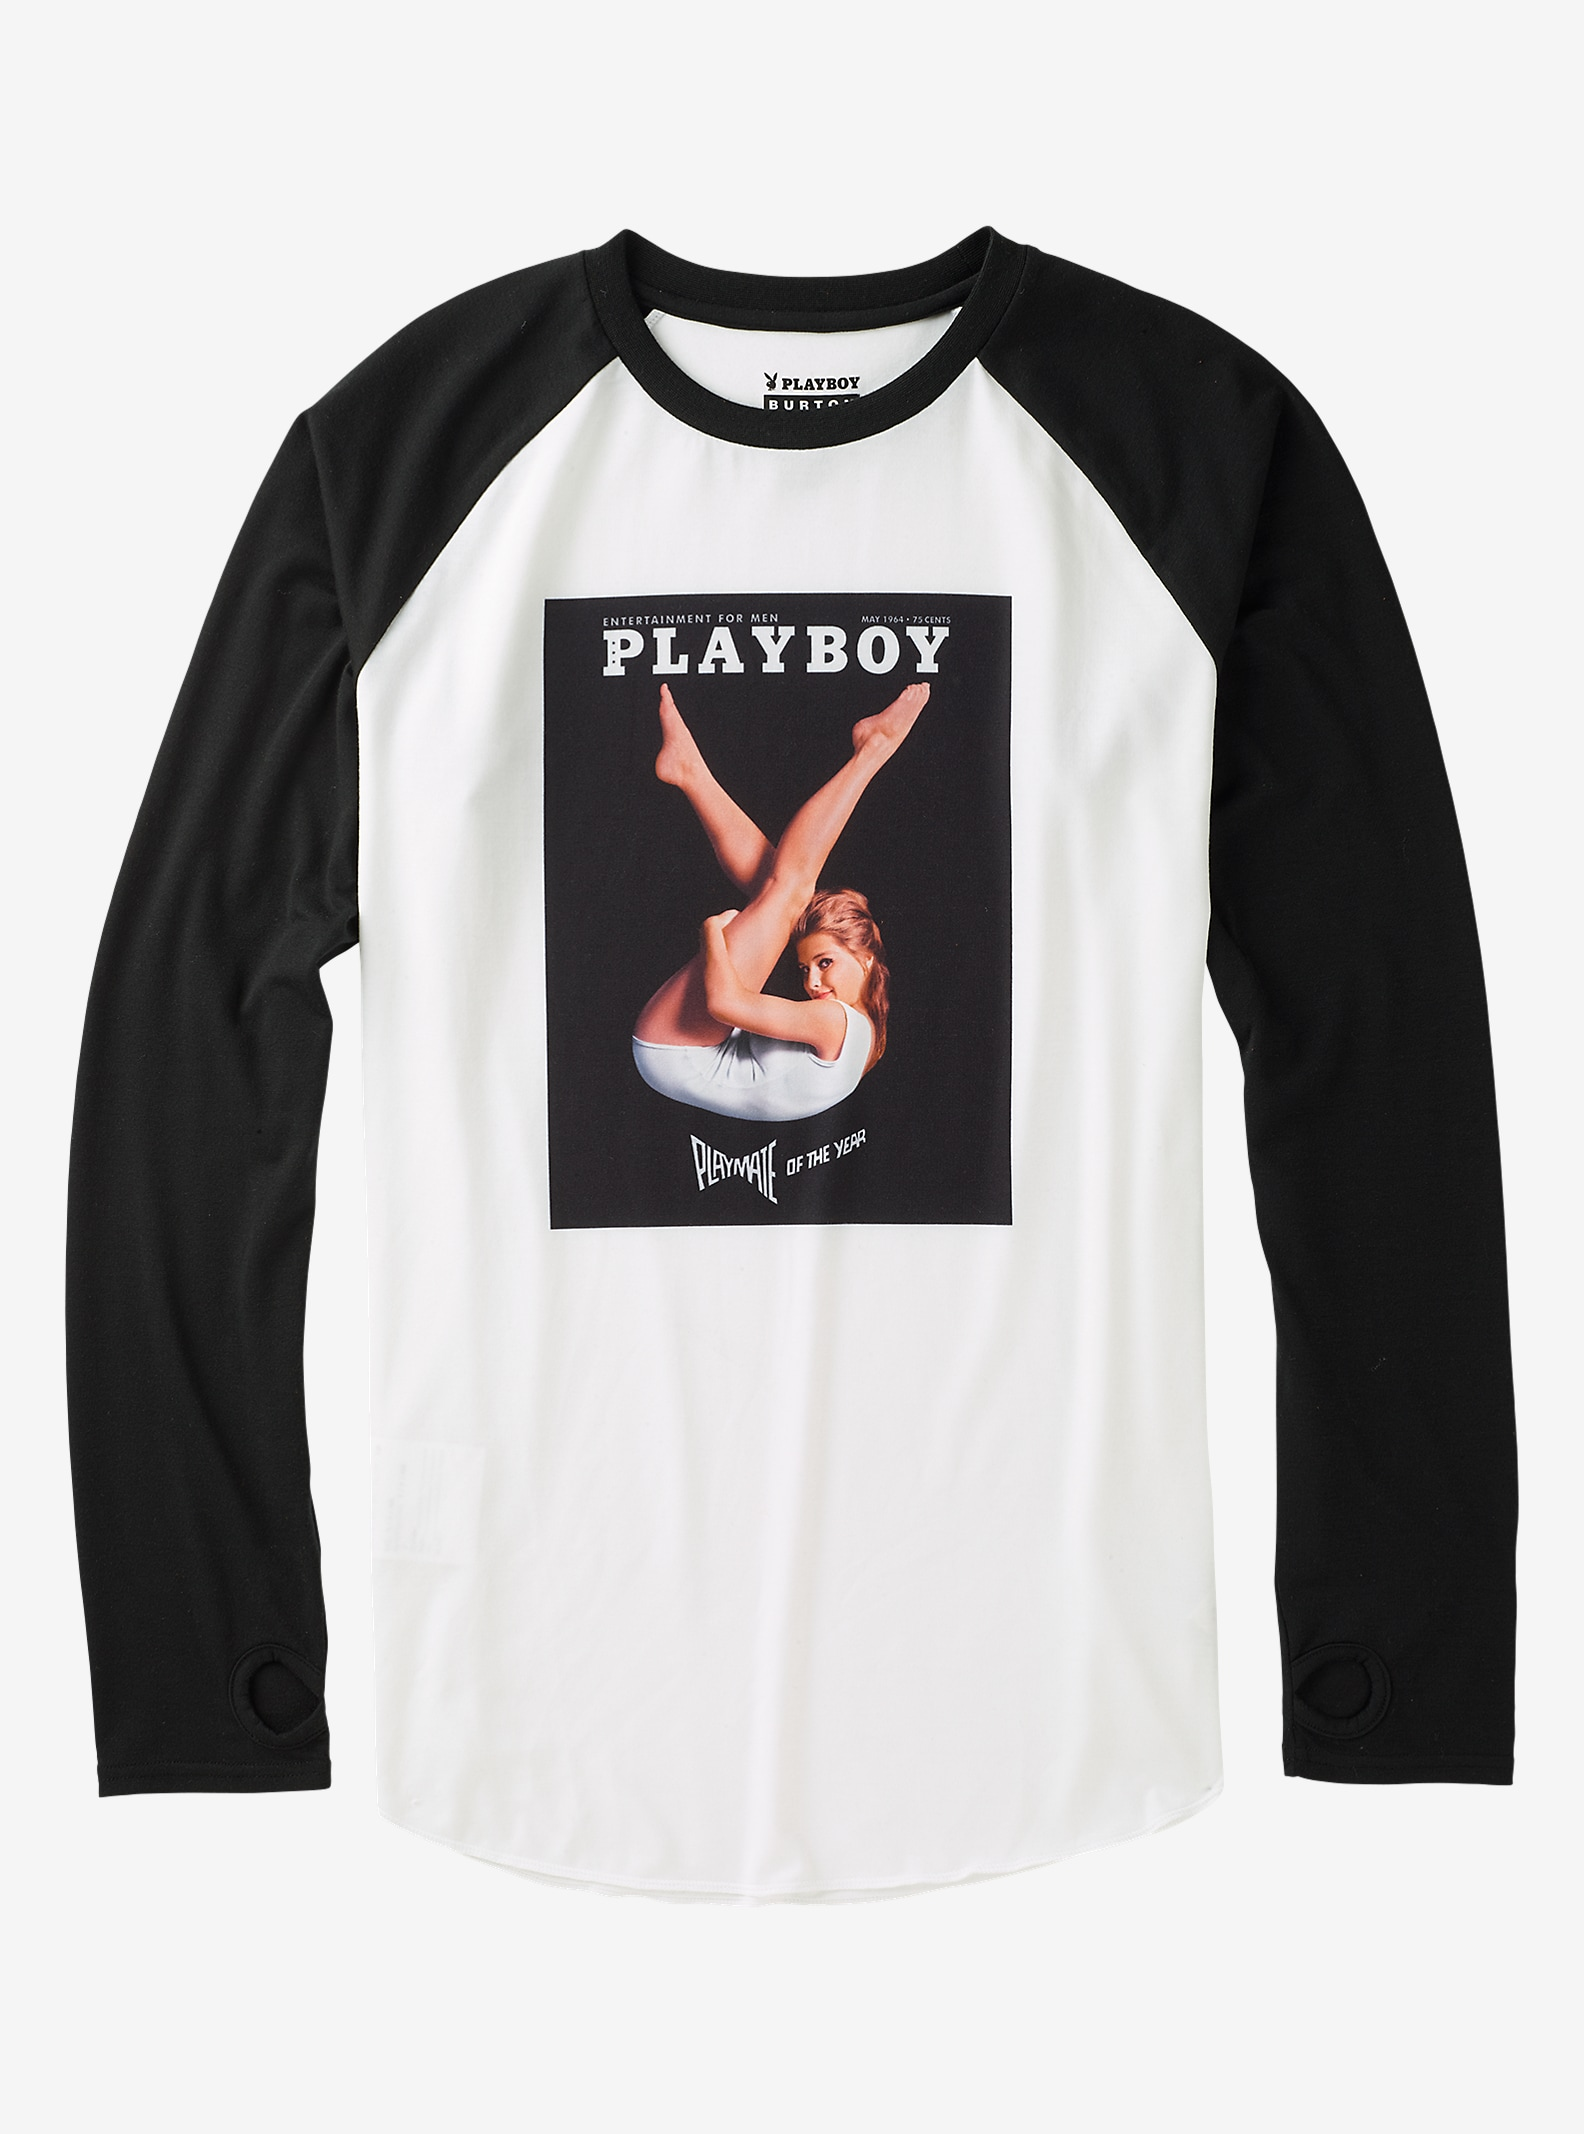 Burton x Playboy Roadie Tech Tee shown in Playboy 1964